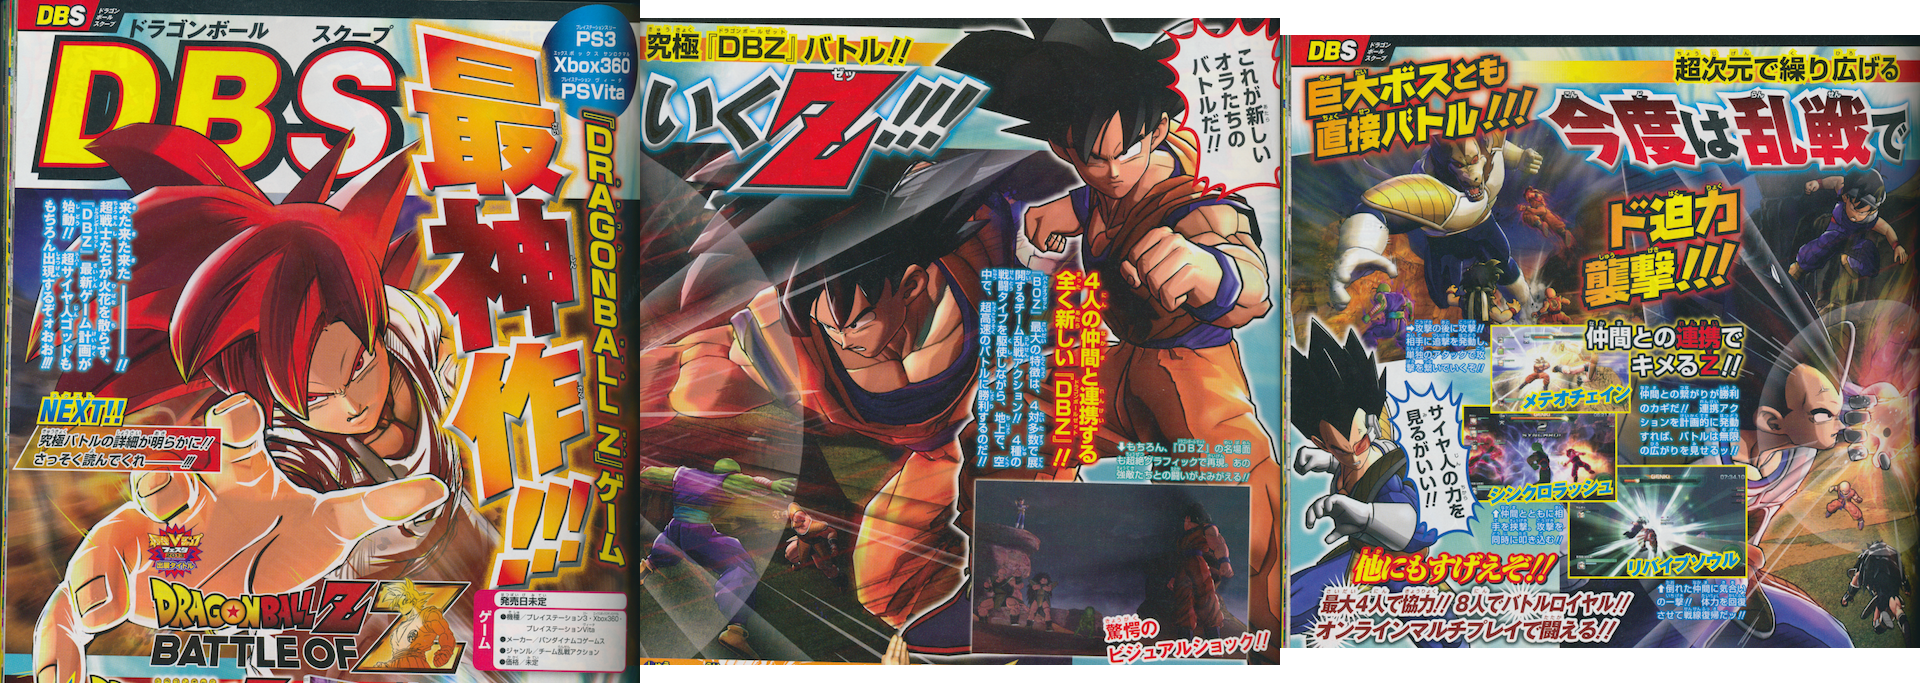 dragon ball z battle of z scans